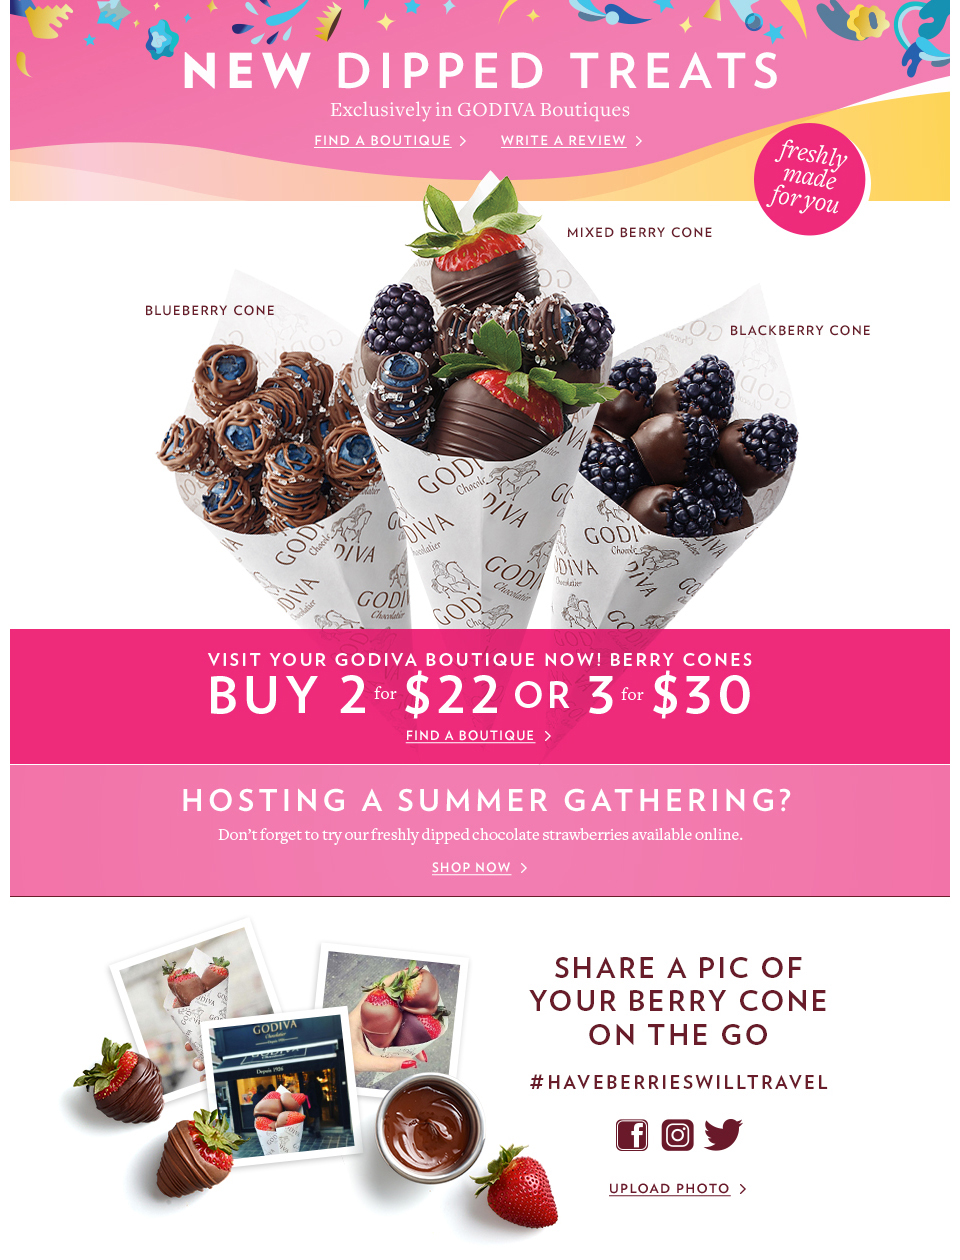 Chocolate Covered Berry Cones | Boutique Exclusives | GODIVA